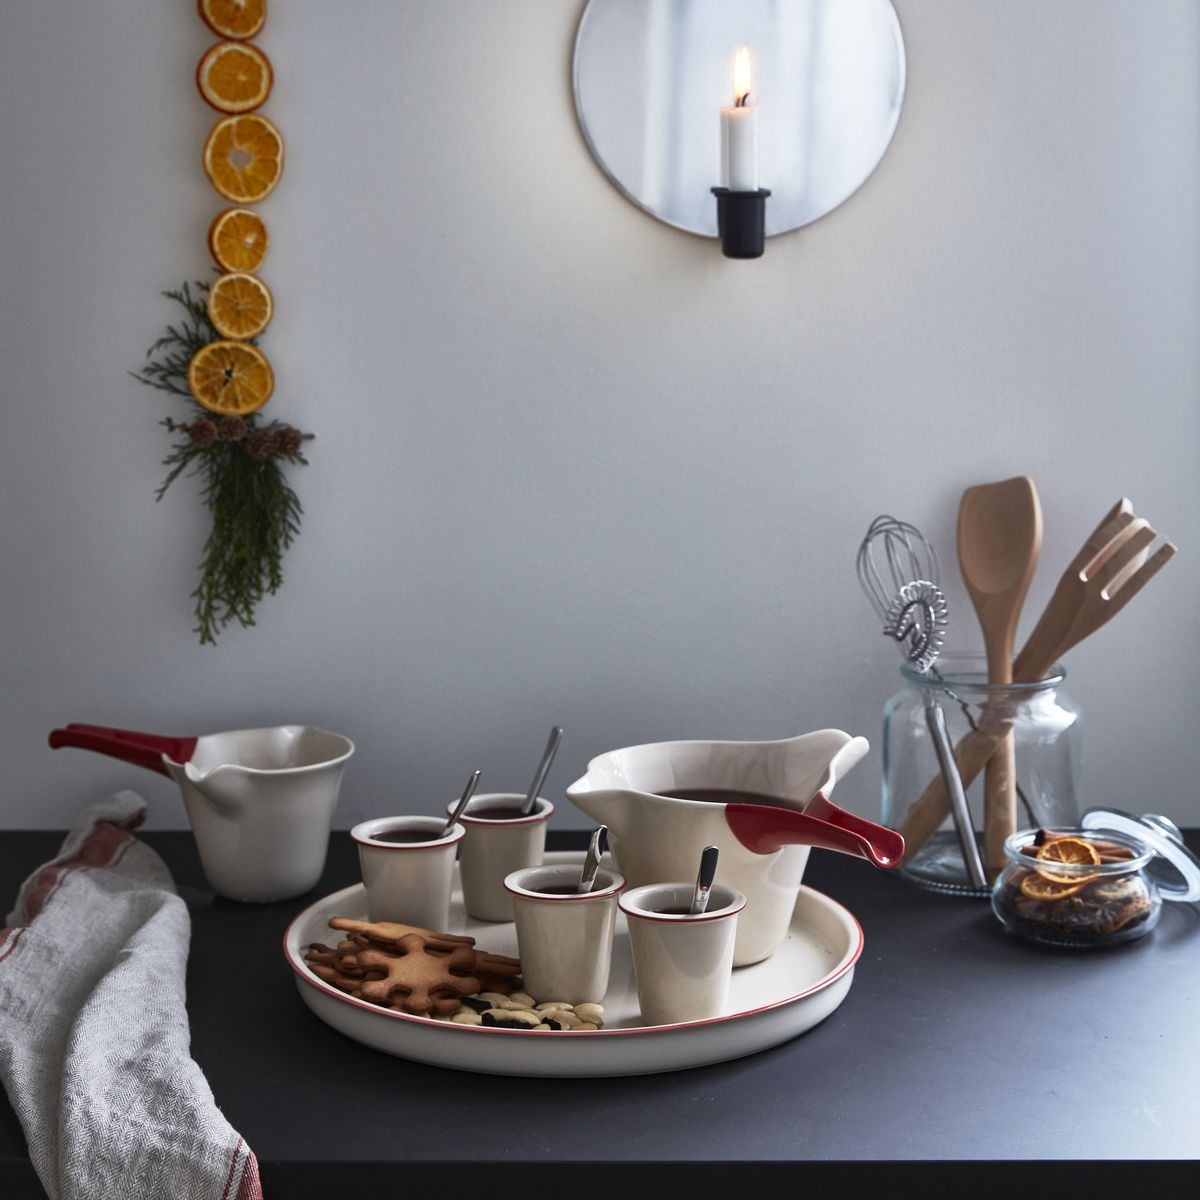 Ikeas New Holiday Collection Is All About Cozy Meals And